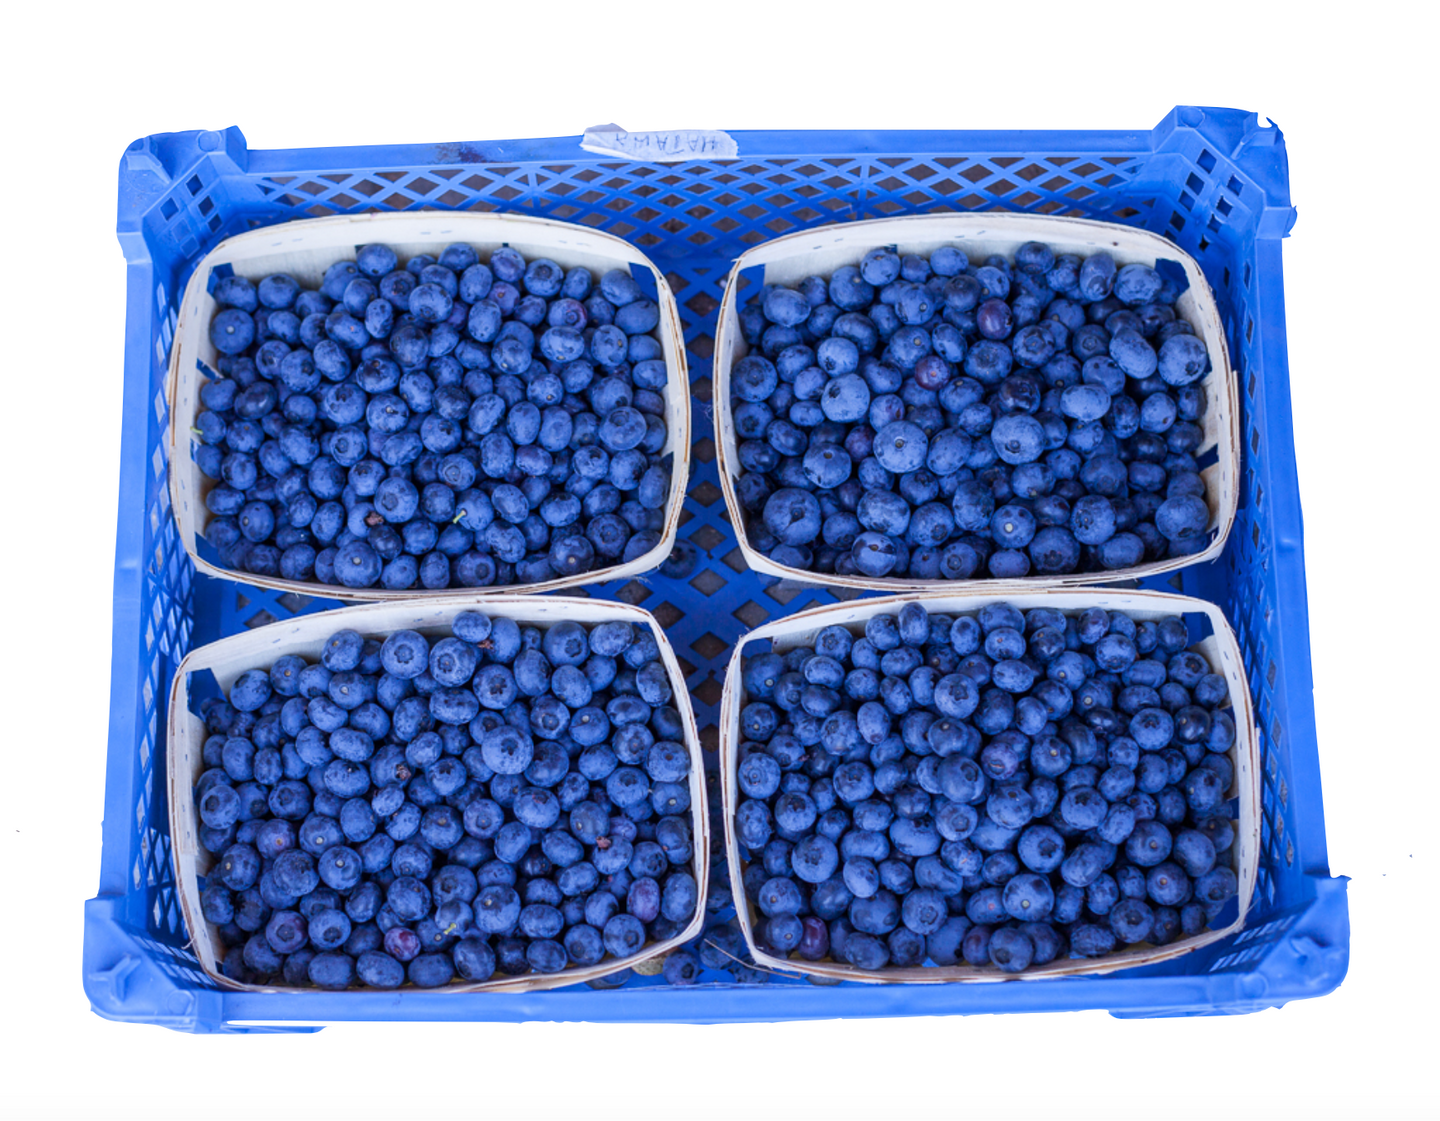 Case of Blueberries